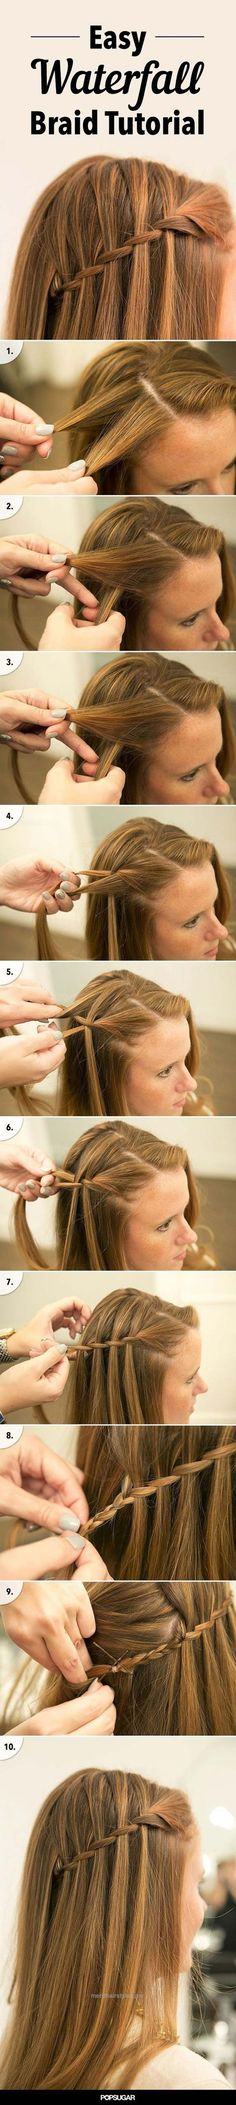 Outstanding Best Hairstyles for Long Hair – Waterfall Braid Tutorial- Step by Step Tutorials for Easy Curls, Updo, Half Up, Braids and Lazy Girl Looks. Prom Ideas, Special Occasion Hair and Braiding Instructions for Teens, Teenagers and Adults, Women and Girls diyprojectsfortee ..